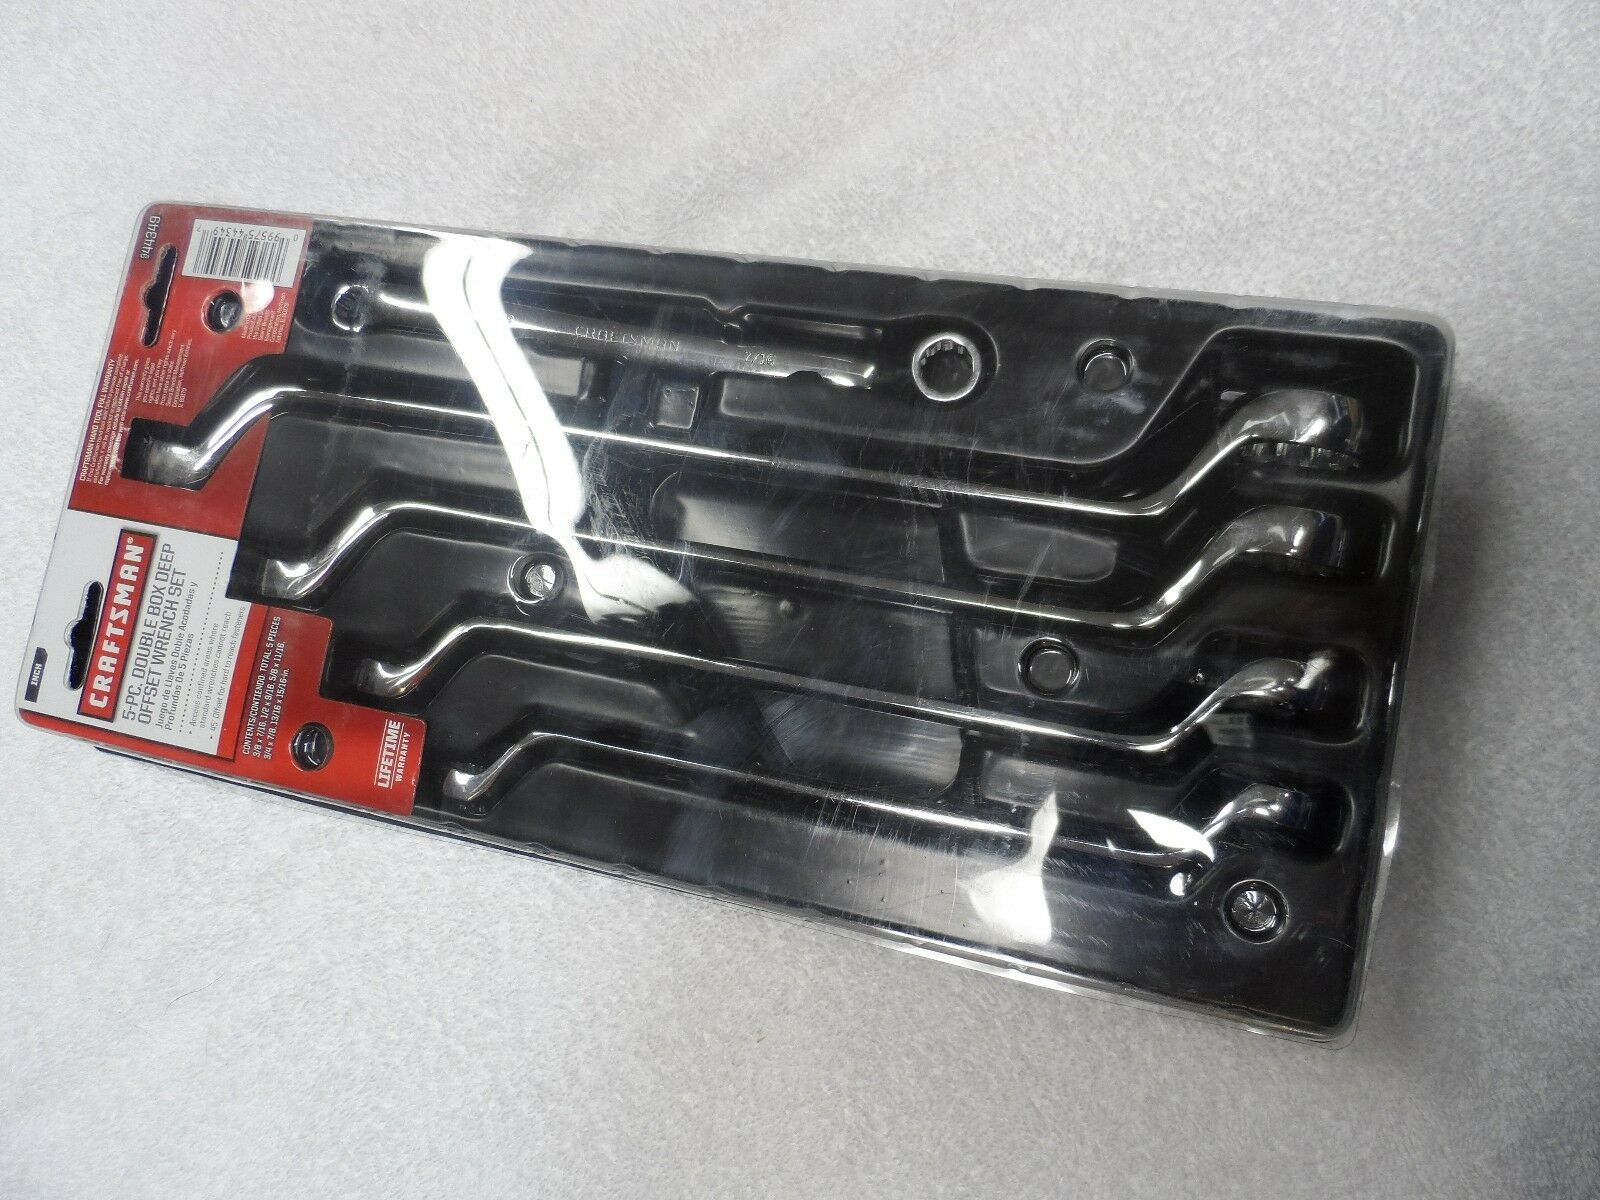 Craftsman Deep Offset Full Polish SAE Wrench Set, 5 pcs, 12 pt - Part